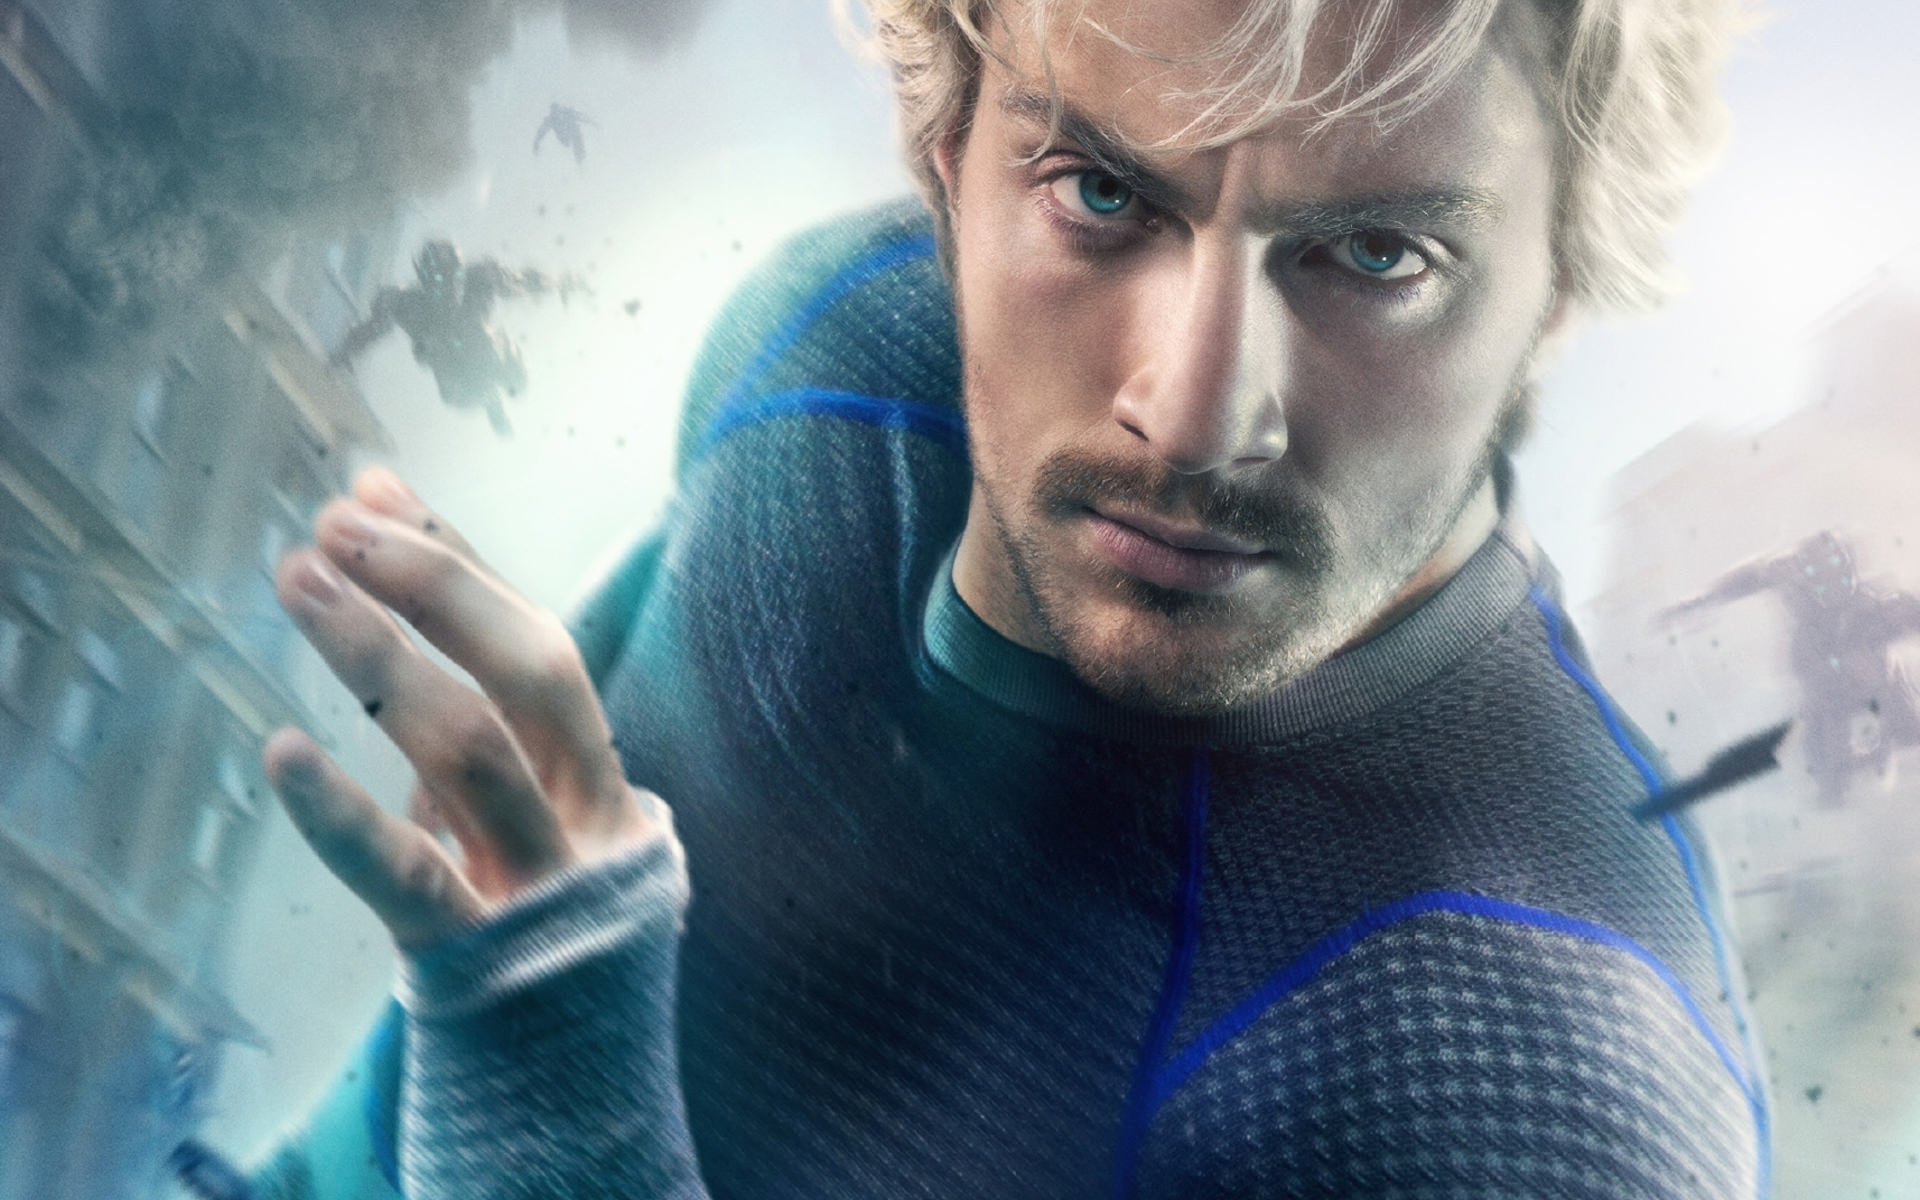 Johnson Quicksilver Avengers Wallpaper